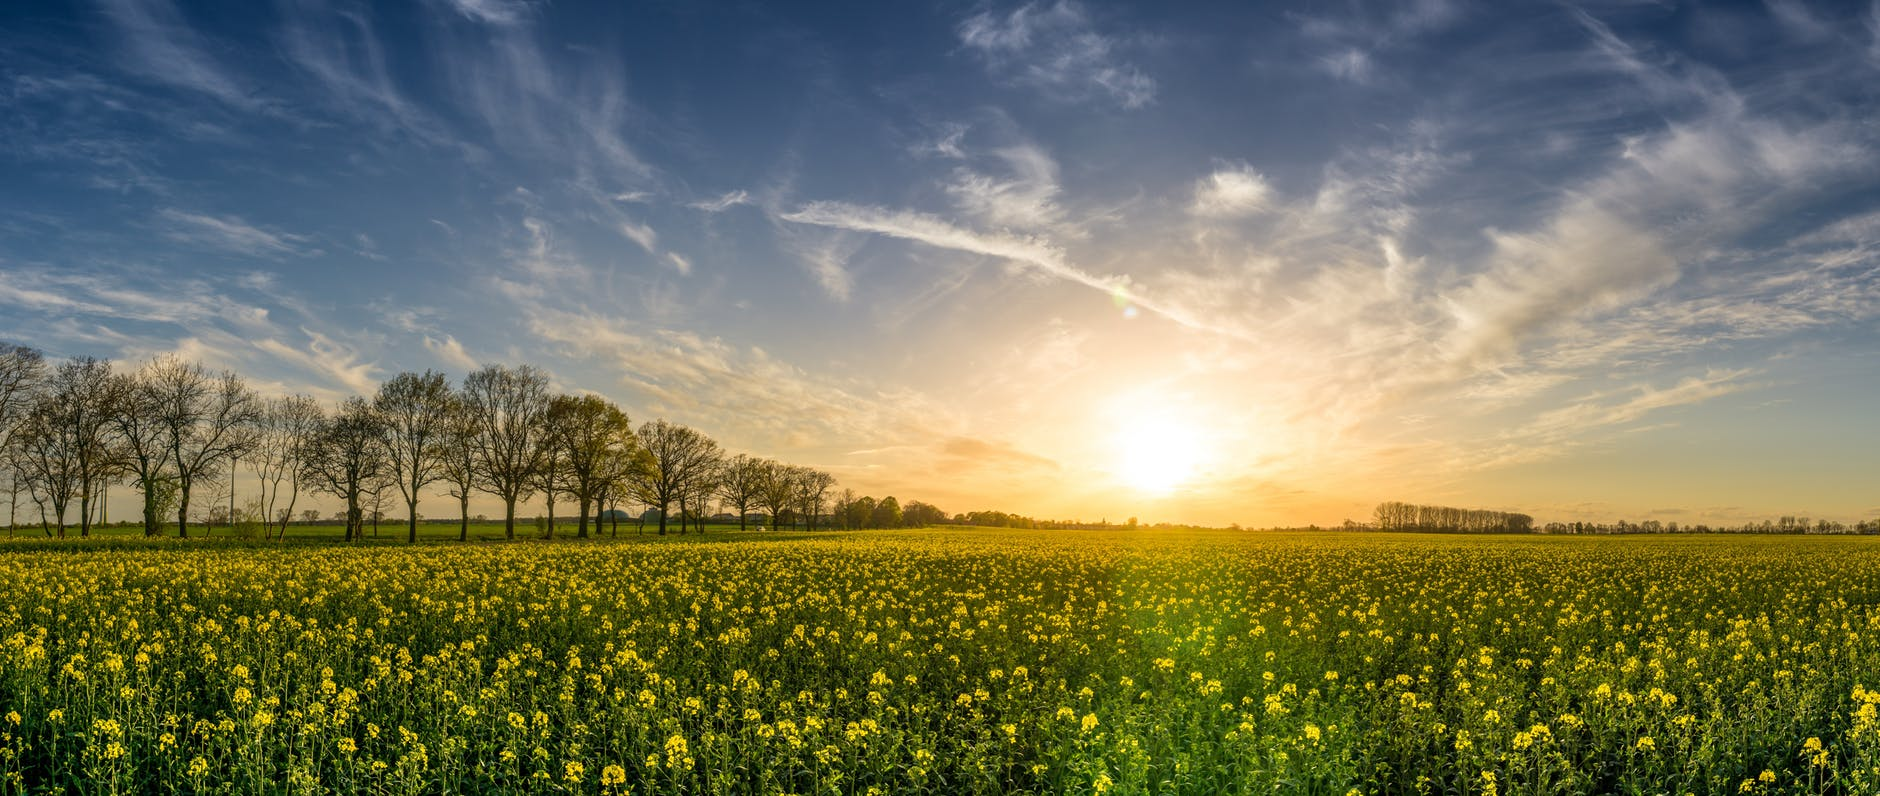 agriculture bloom blossom clouds